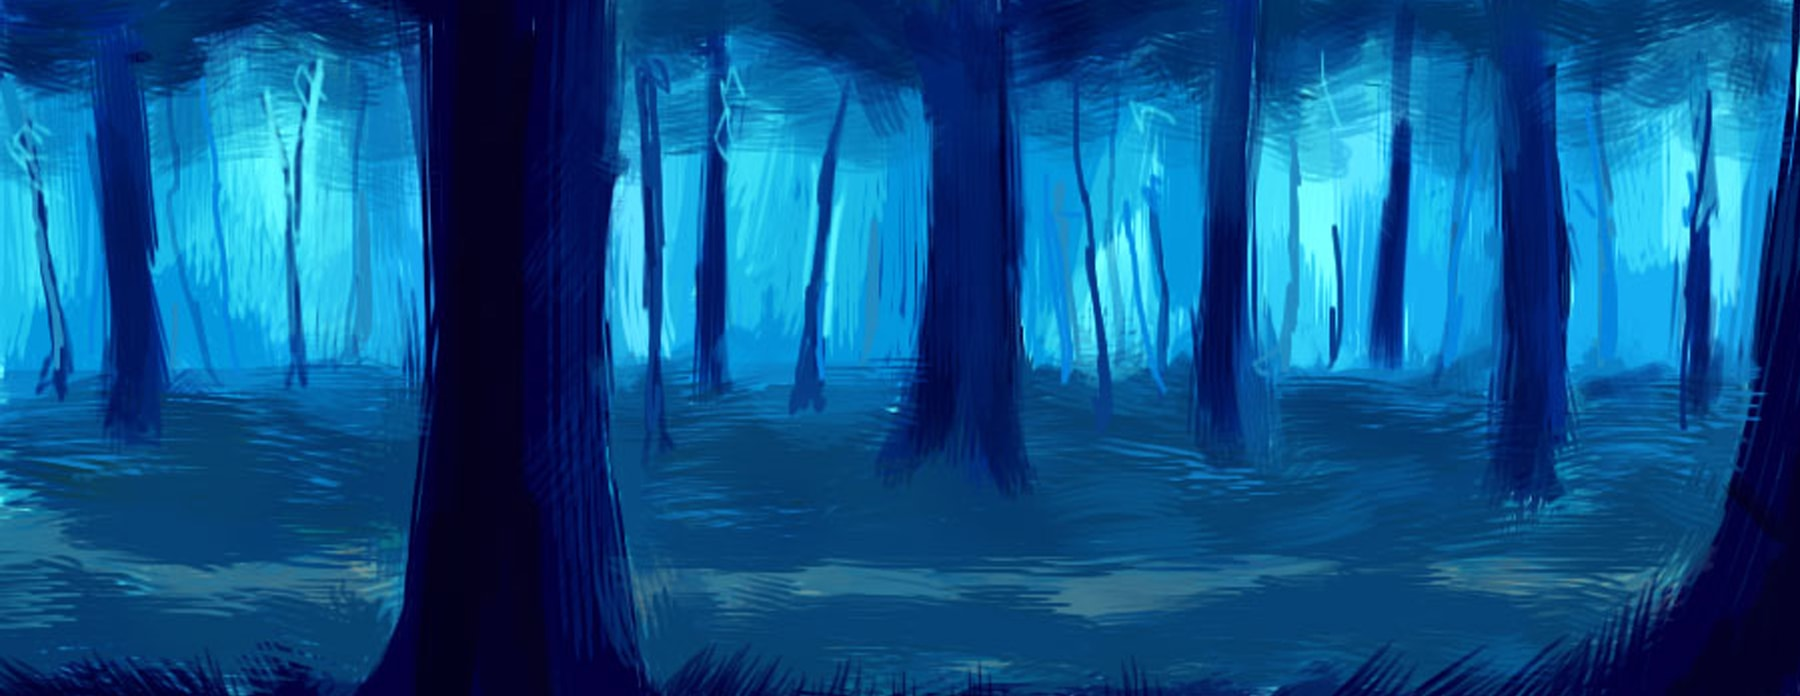 Illustration of a forest rendered in deep blues